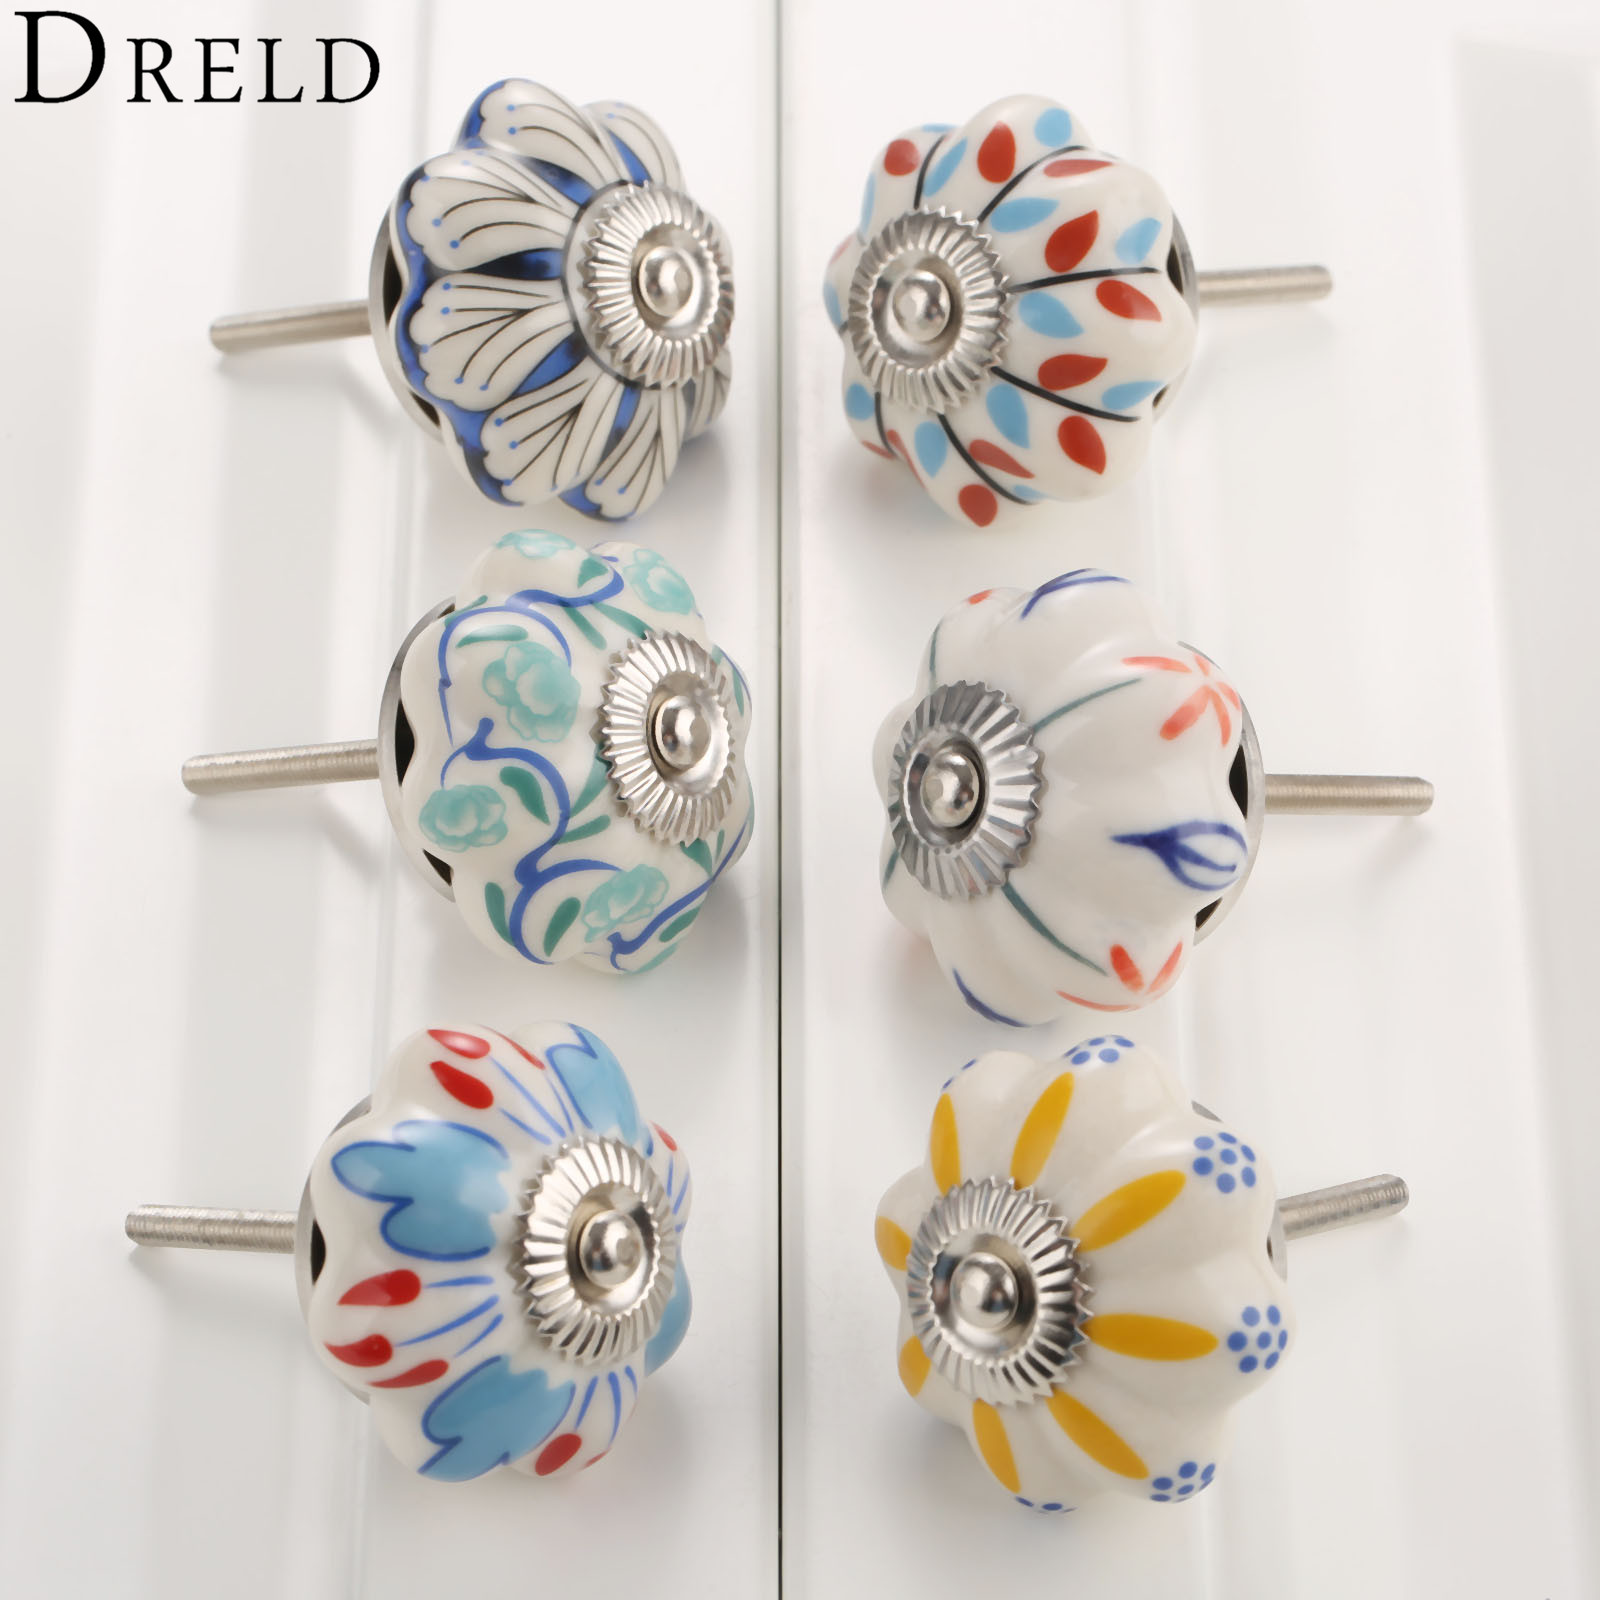 DRELD 40mm Furniture Handle Ceramic Drawer Cabinet Knobs and Handles Knobs Door Cupboard Kitchen Pull Handles Furniture Hardware modern handle alloy knobs and mini handles door handle cupboard drawer kitchen pull knob furniture 7 10mm 20pcs